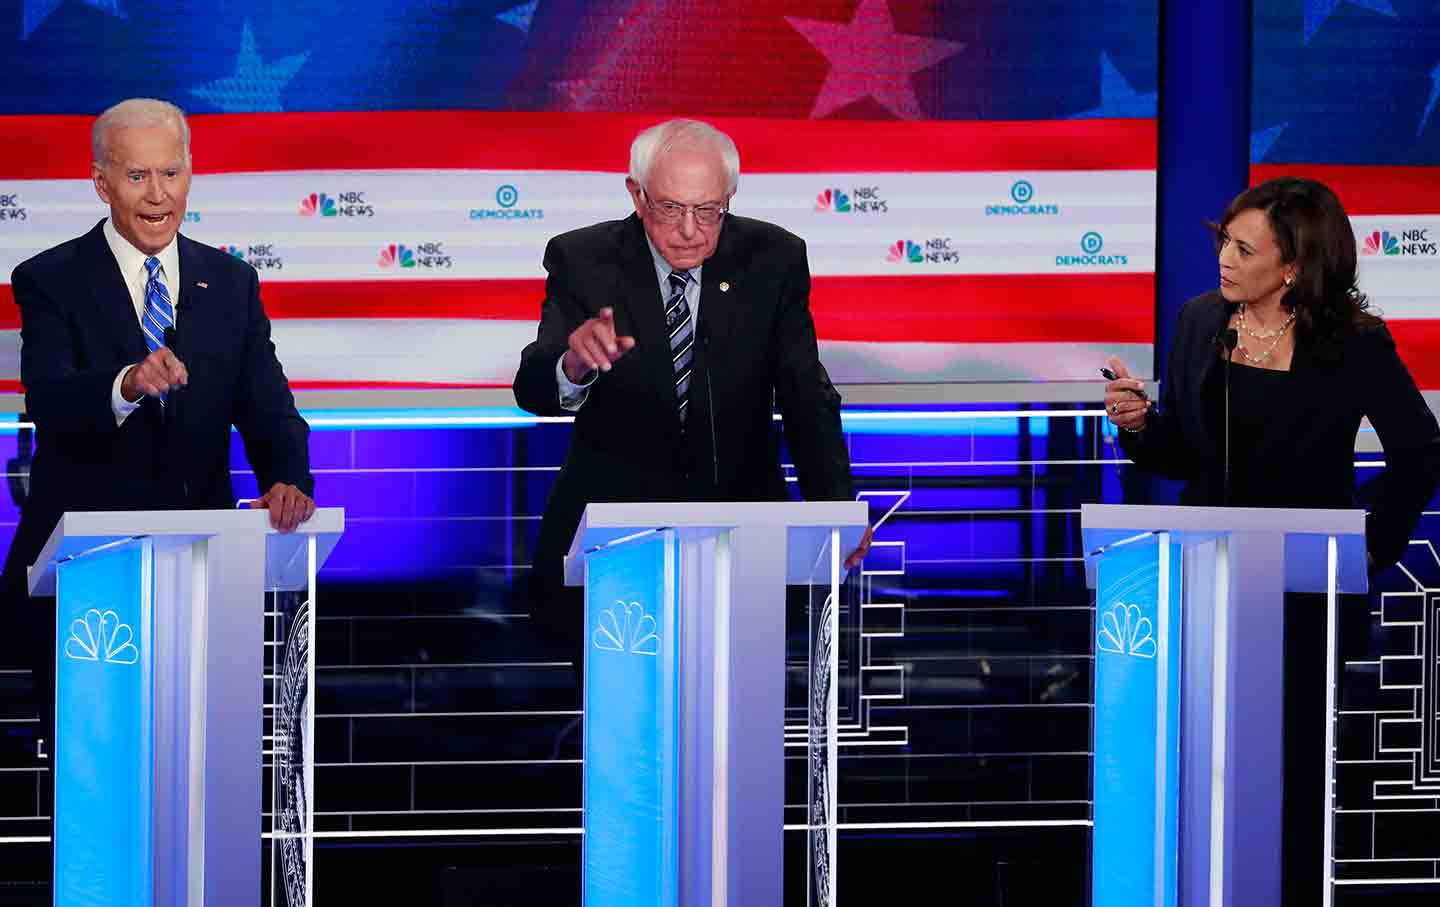 Moderate Democrats Should Worry About Their Own 2020